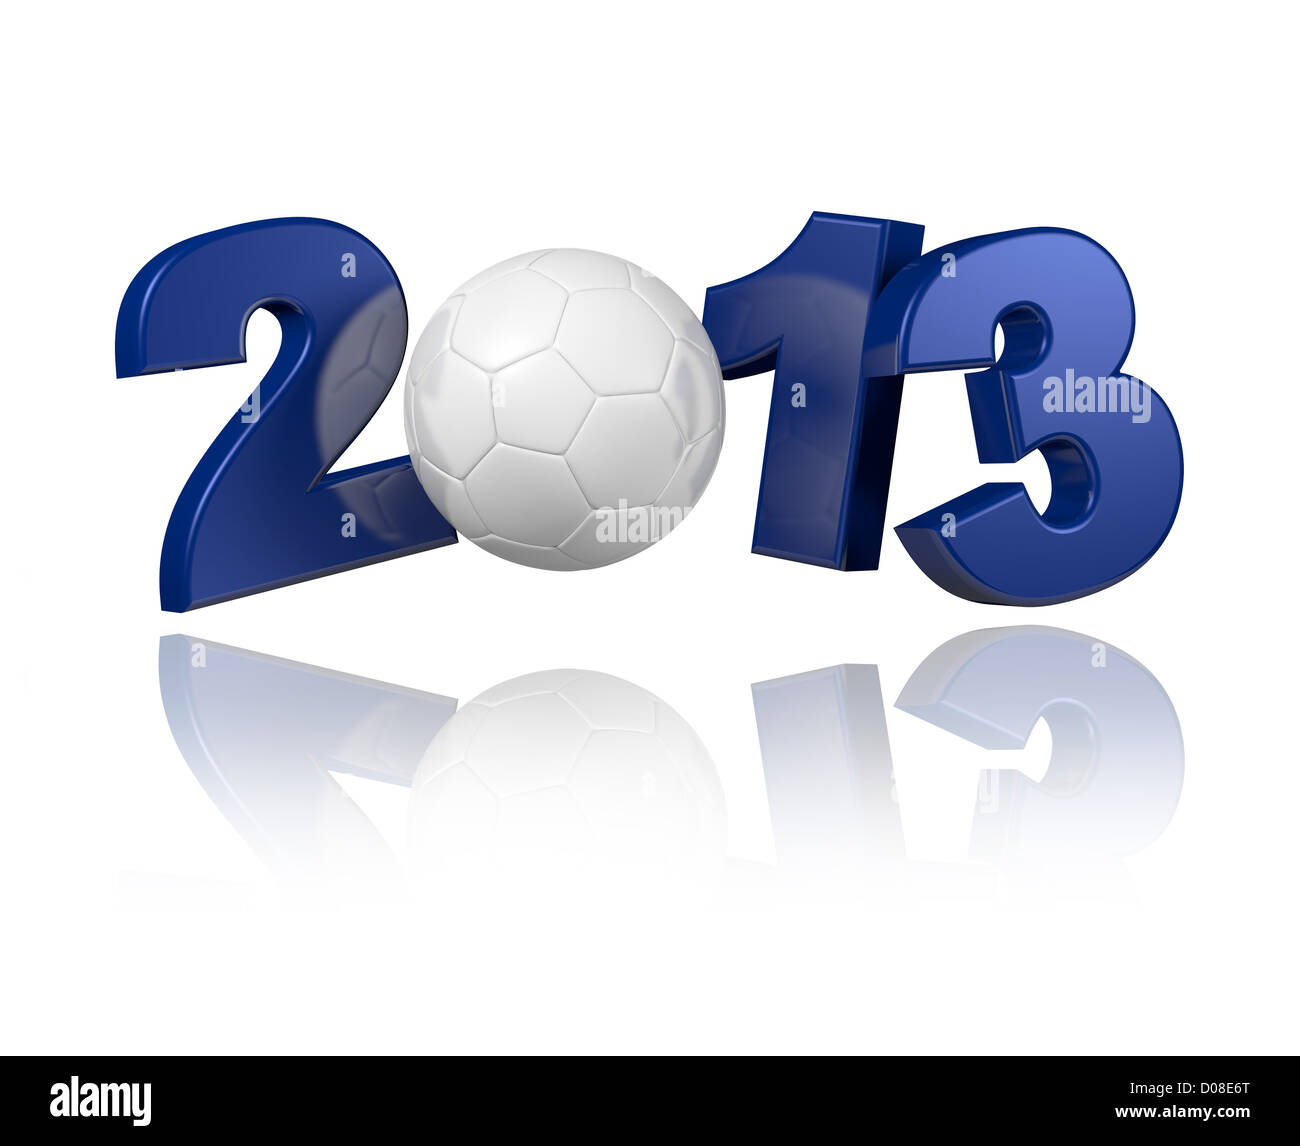 Handball 2013 design with a white background - Stock Image